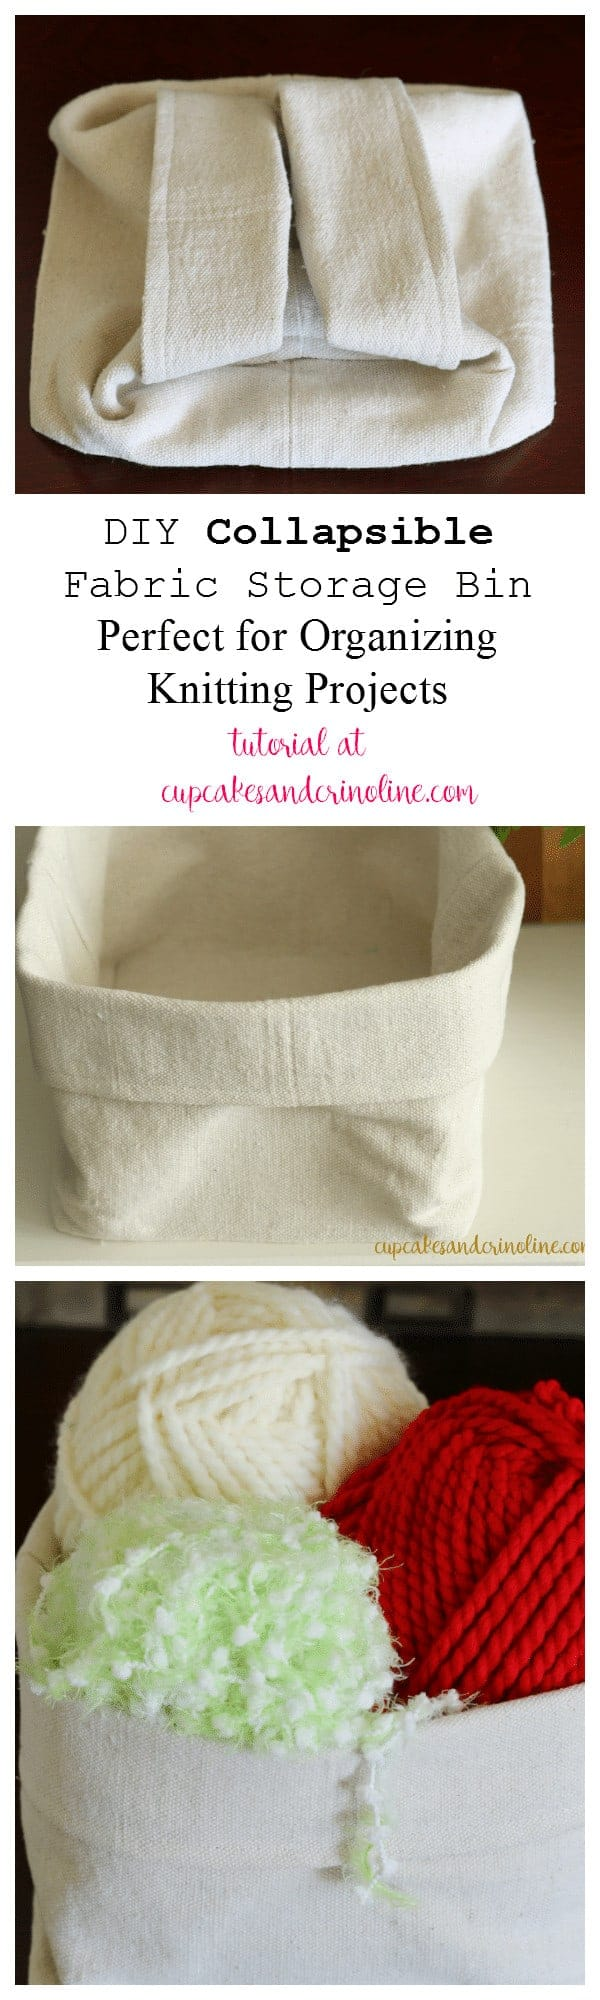 DIY Collapsible Fabric Storage Bin - Perfect for Organizing Knitting Projects - tutorial at cupcakesandcrinoline.com